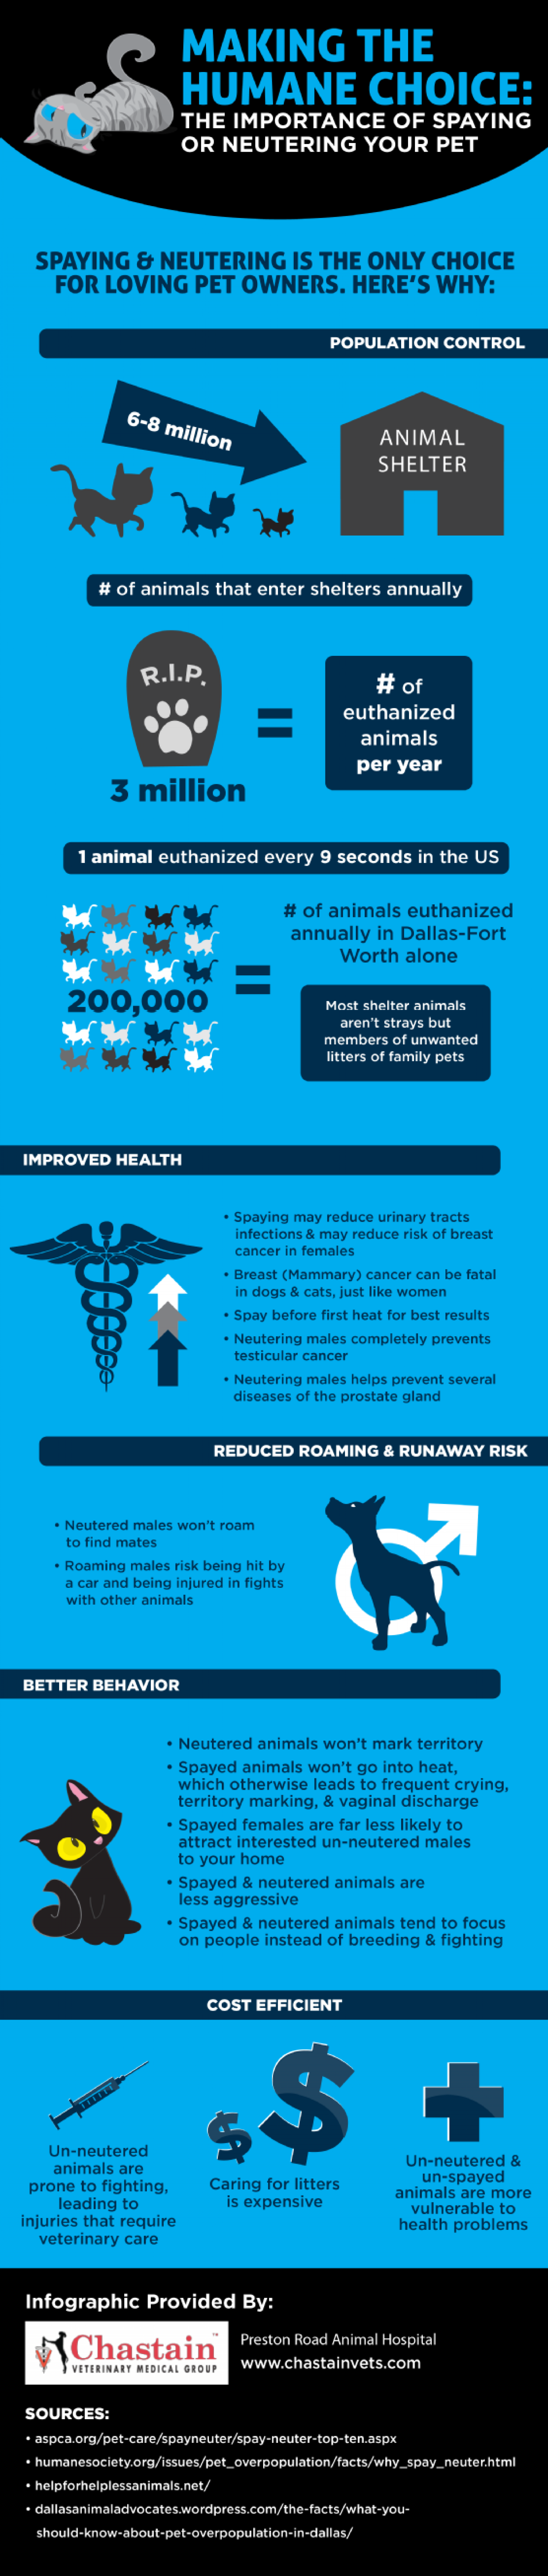 Making the Humane Choice: The Importance of Spaying or Neutering Your Pet Infographic